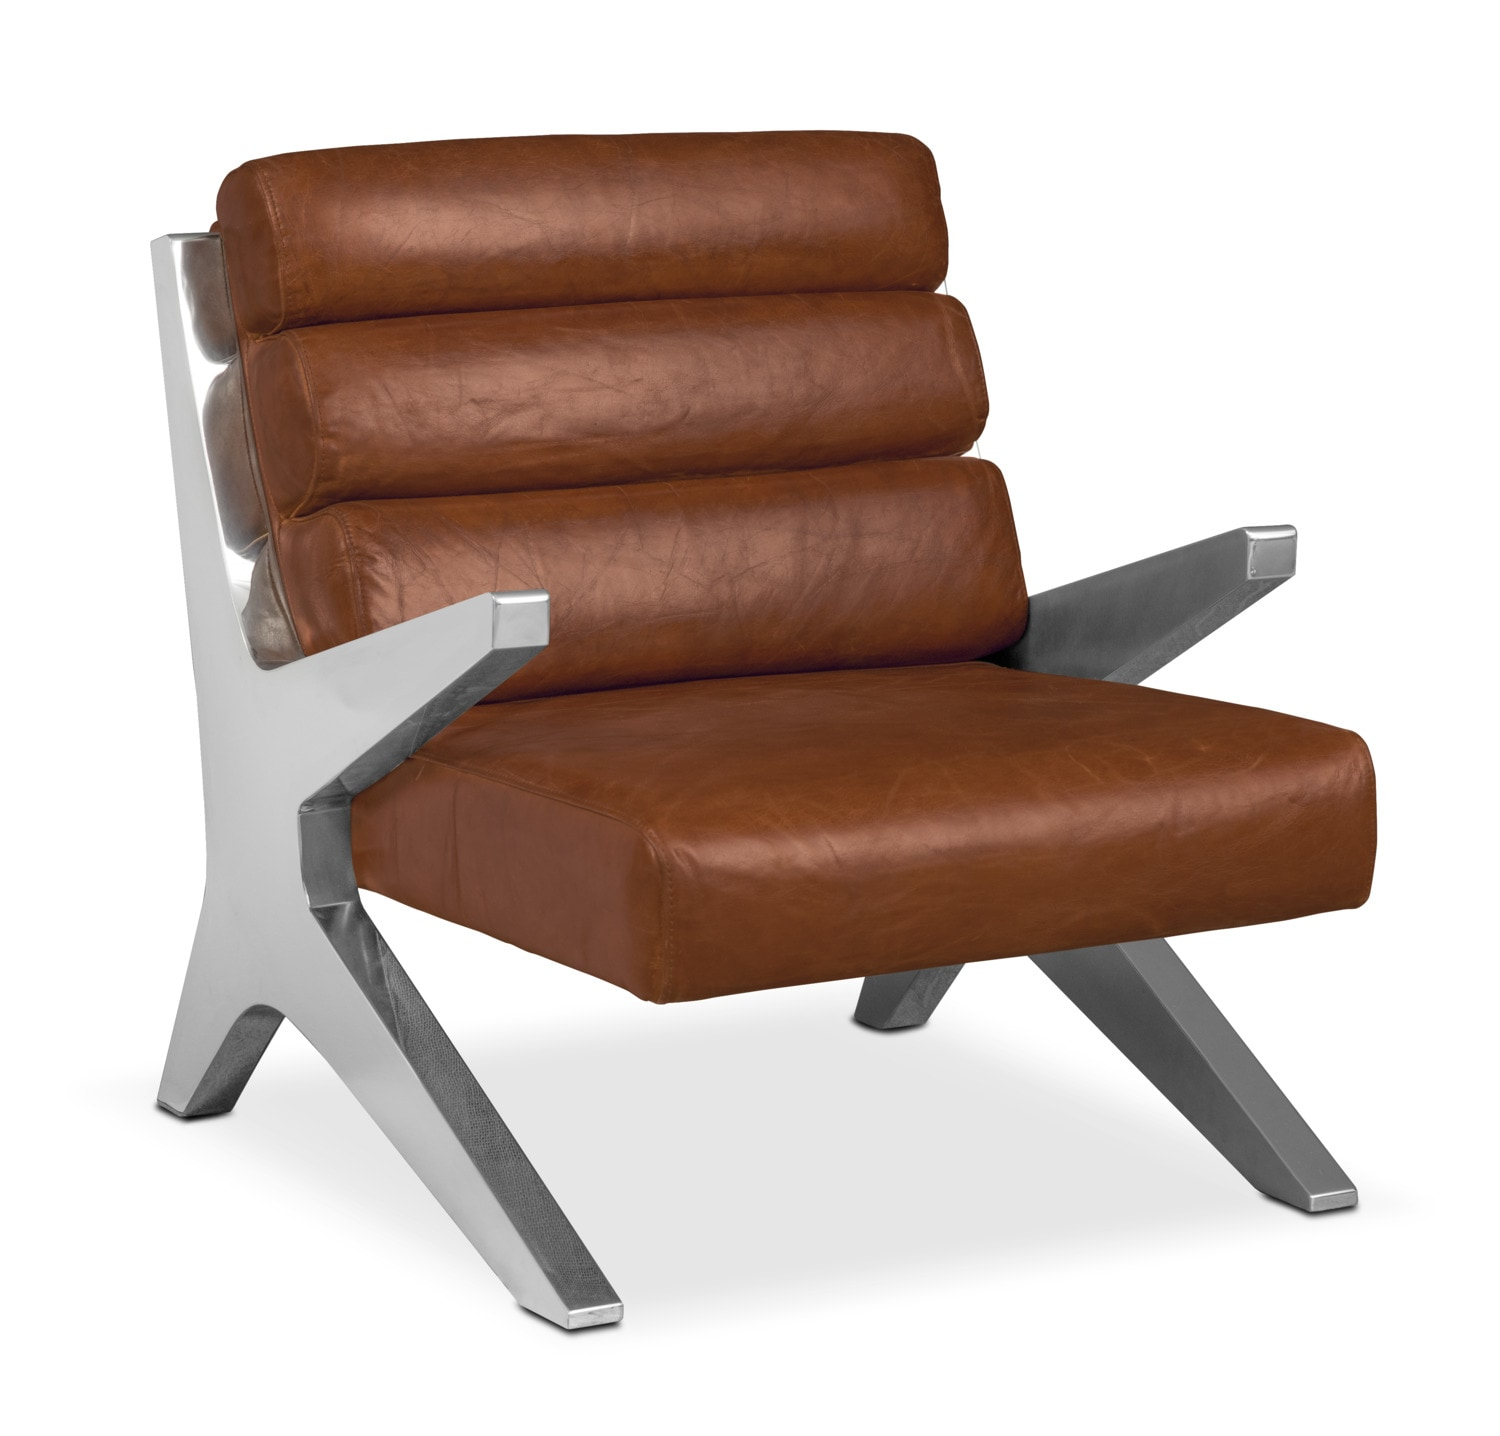 Living Room Furniture - Keanu Accent Chair - Brown